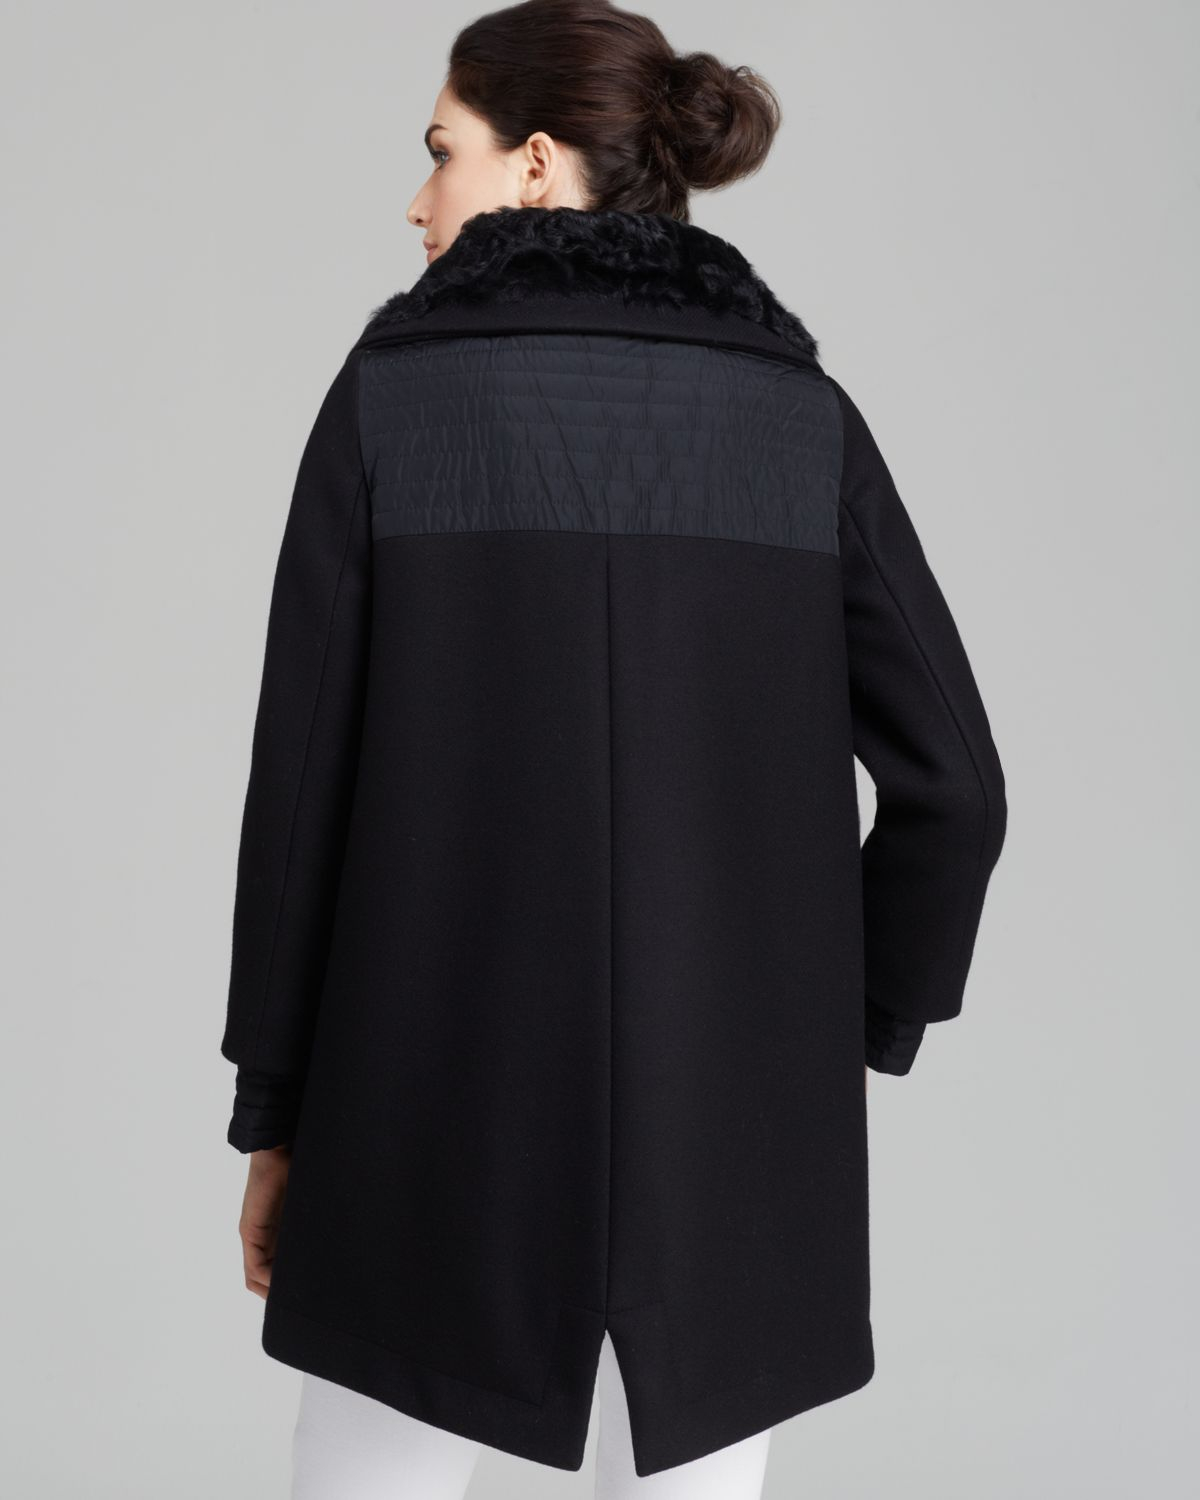 Moncler Coat - Eridan Wool Blend Down Lined in Black | Lyst